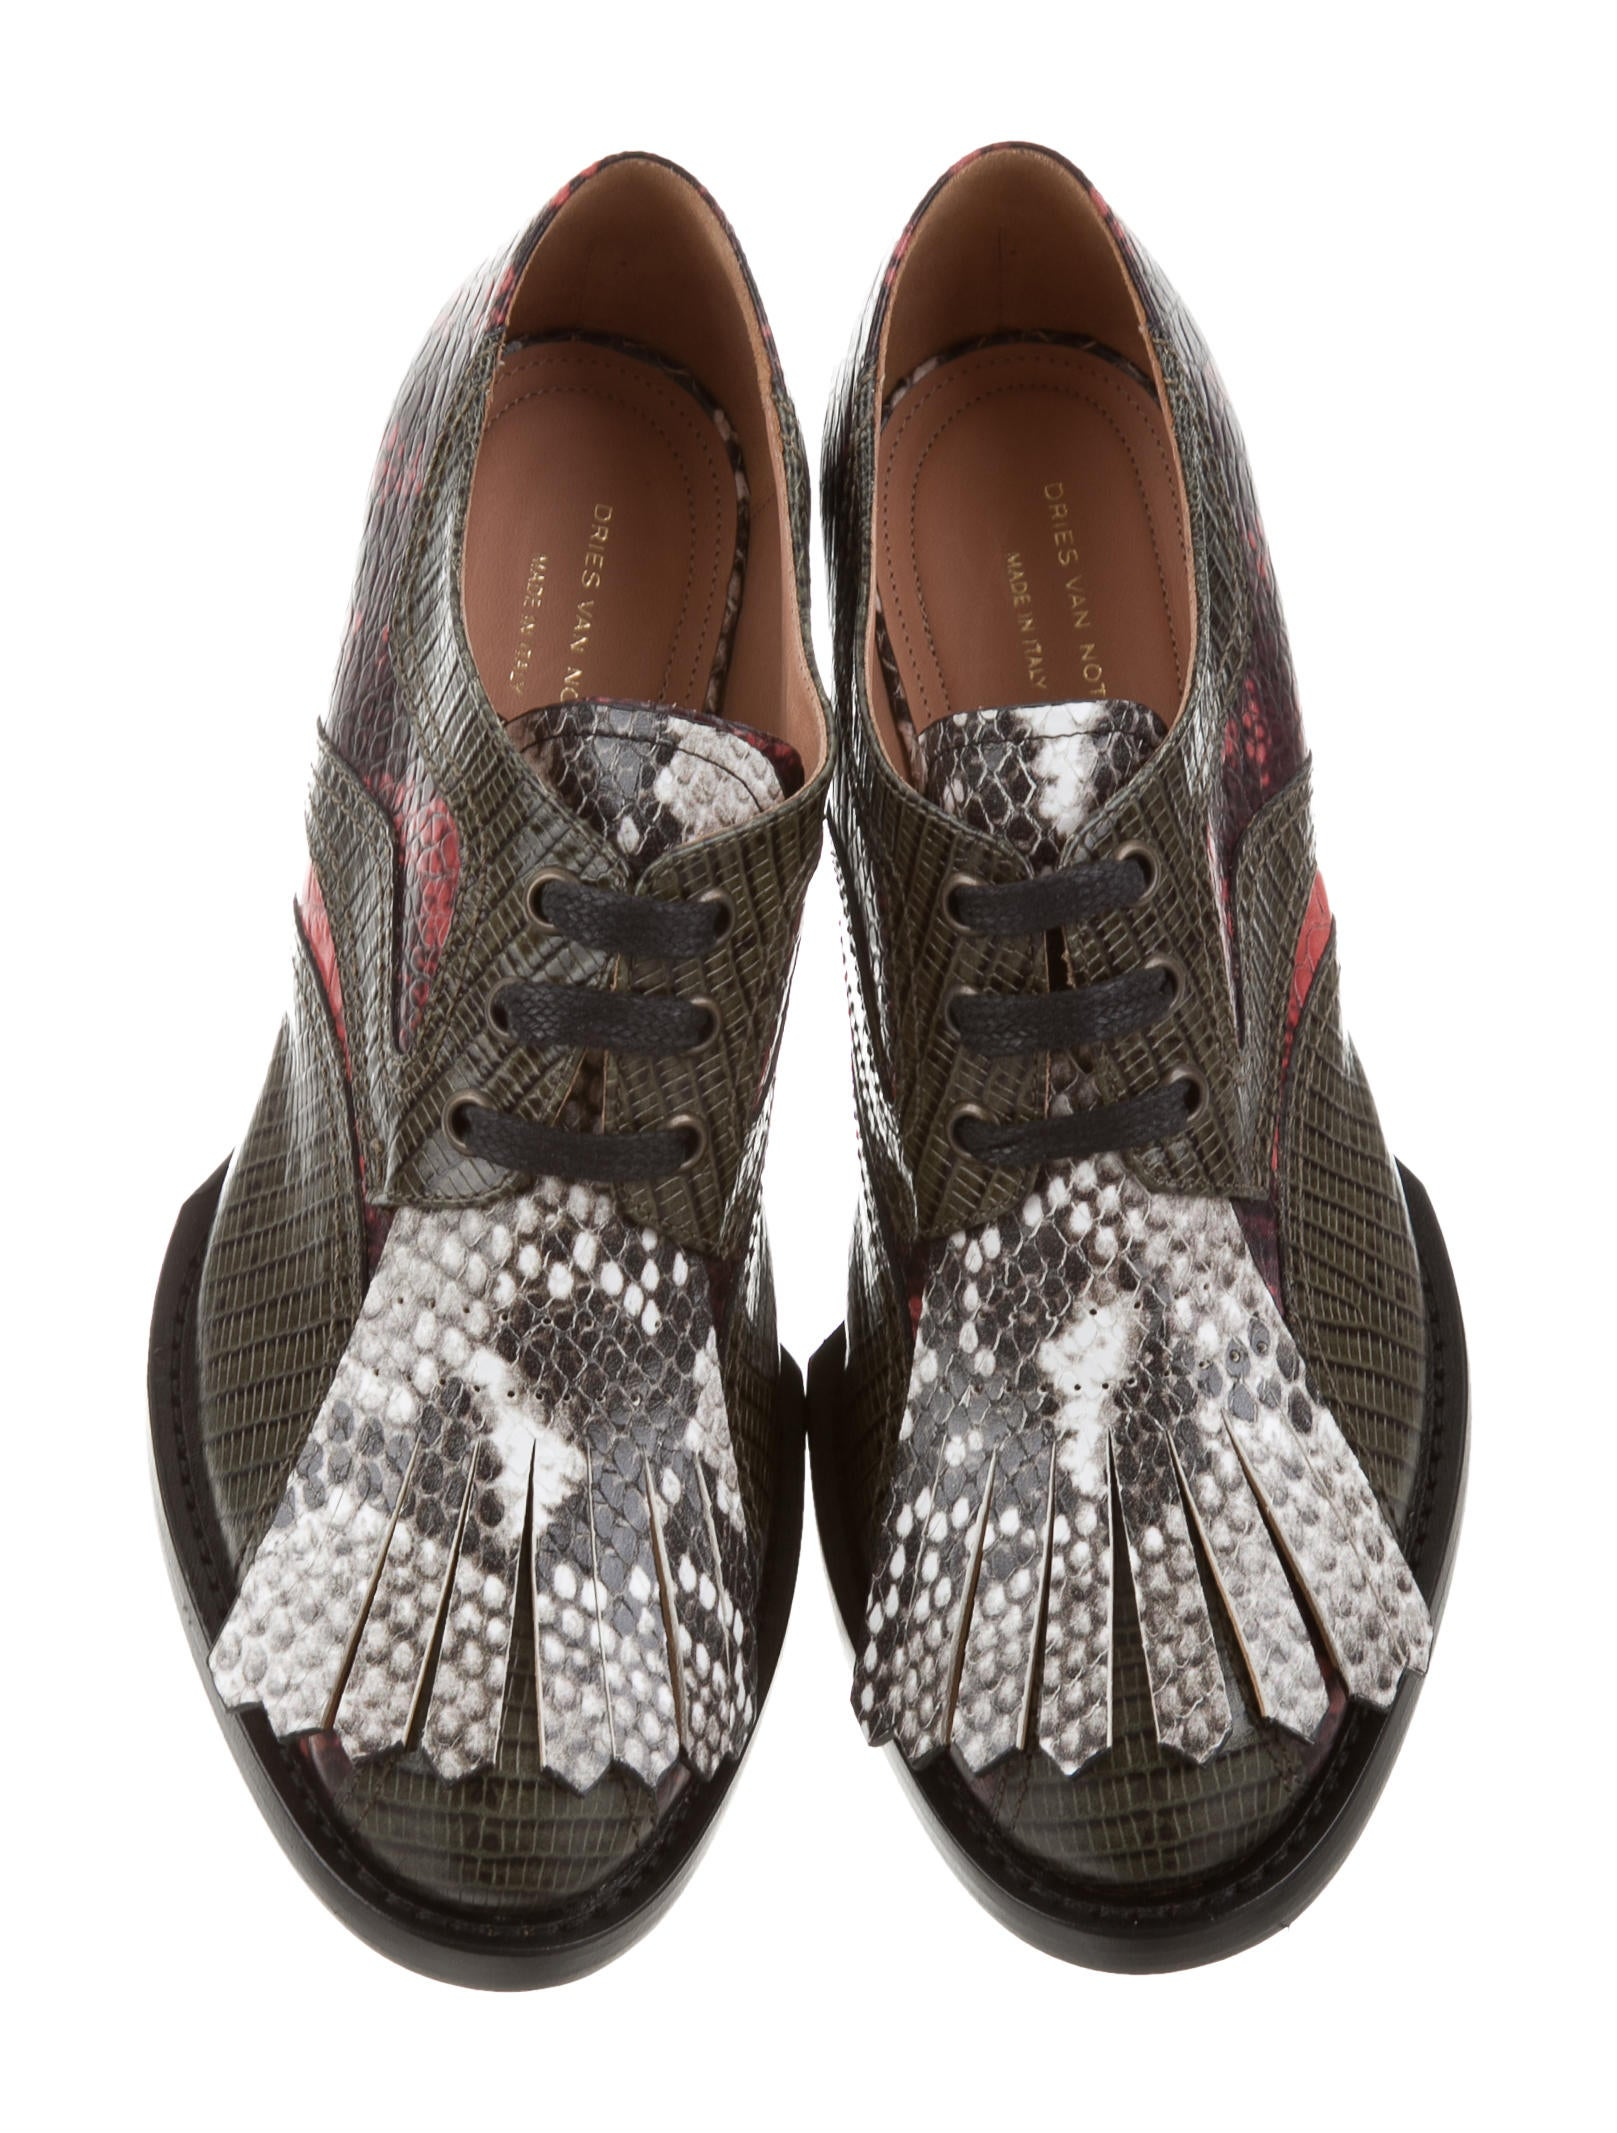 low price fee shipping Dries Van Noten Embossed Lace-Up Booties w/ Tags free shipping sneakernews buy cheap pick a best XeLTHj